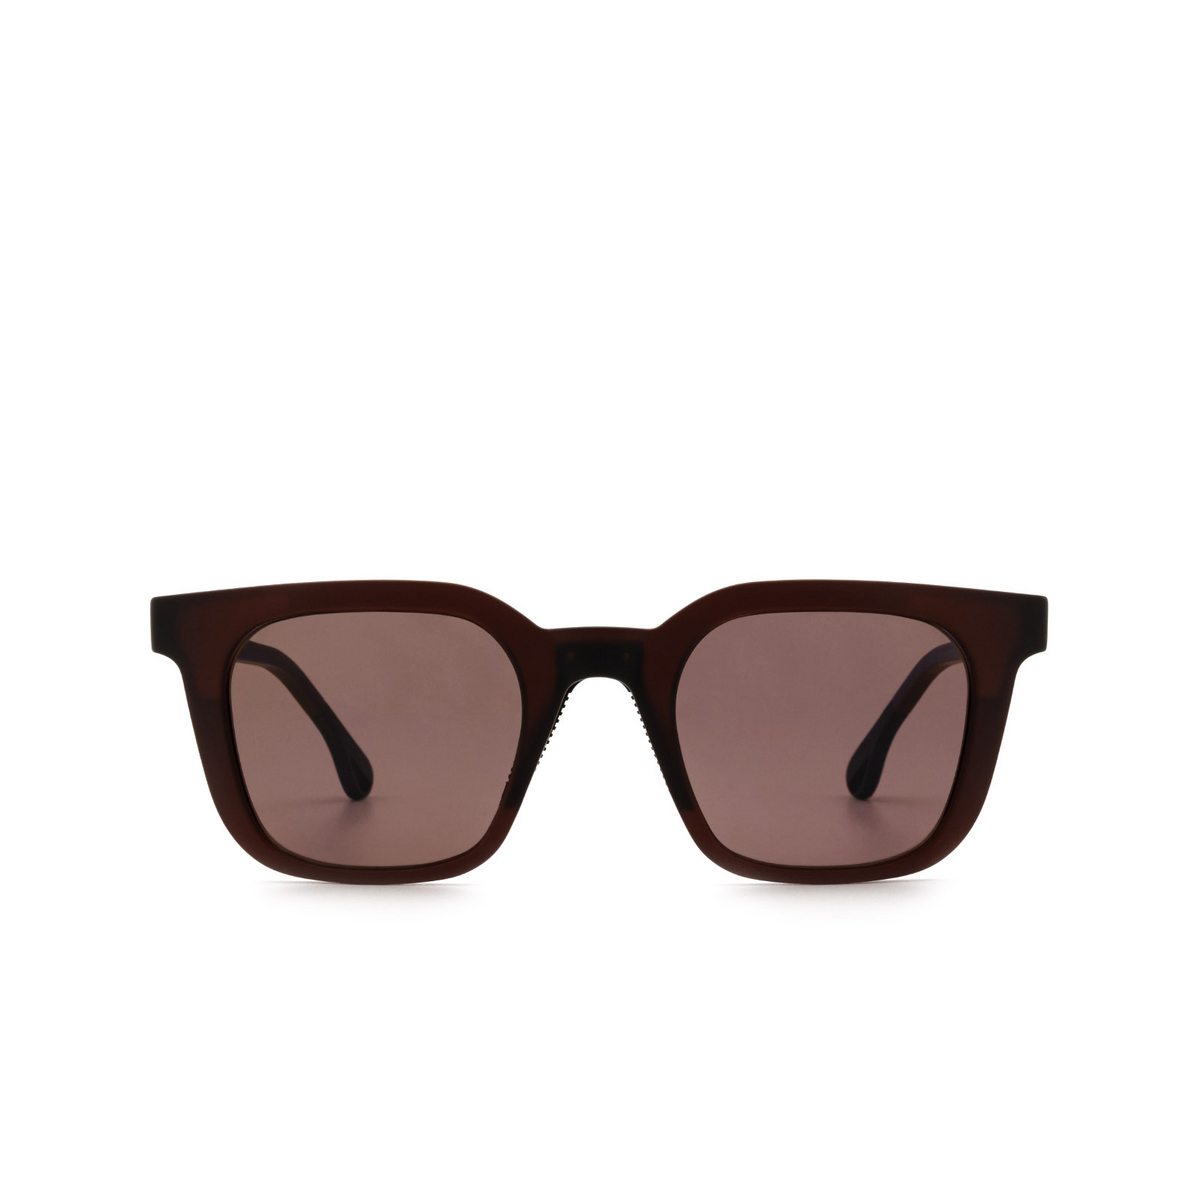 Chimi® Square Sunglasses: 04 ACTIVE color Red - front view.